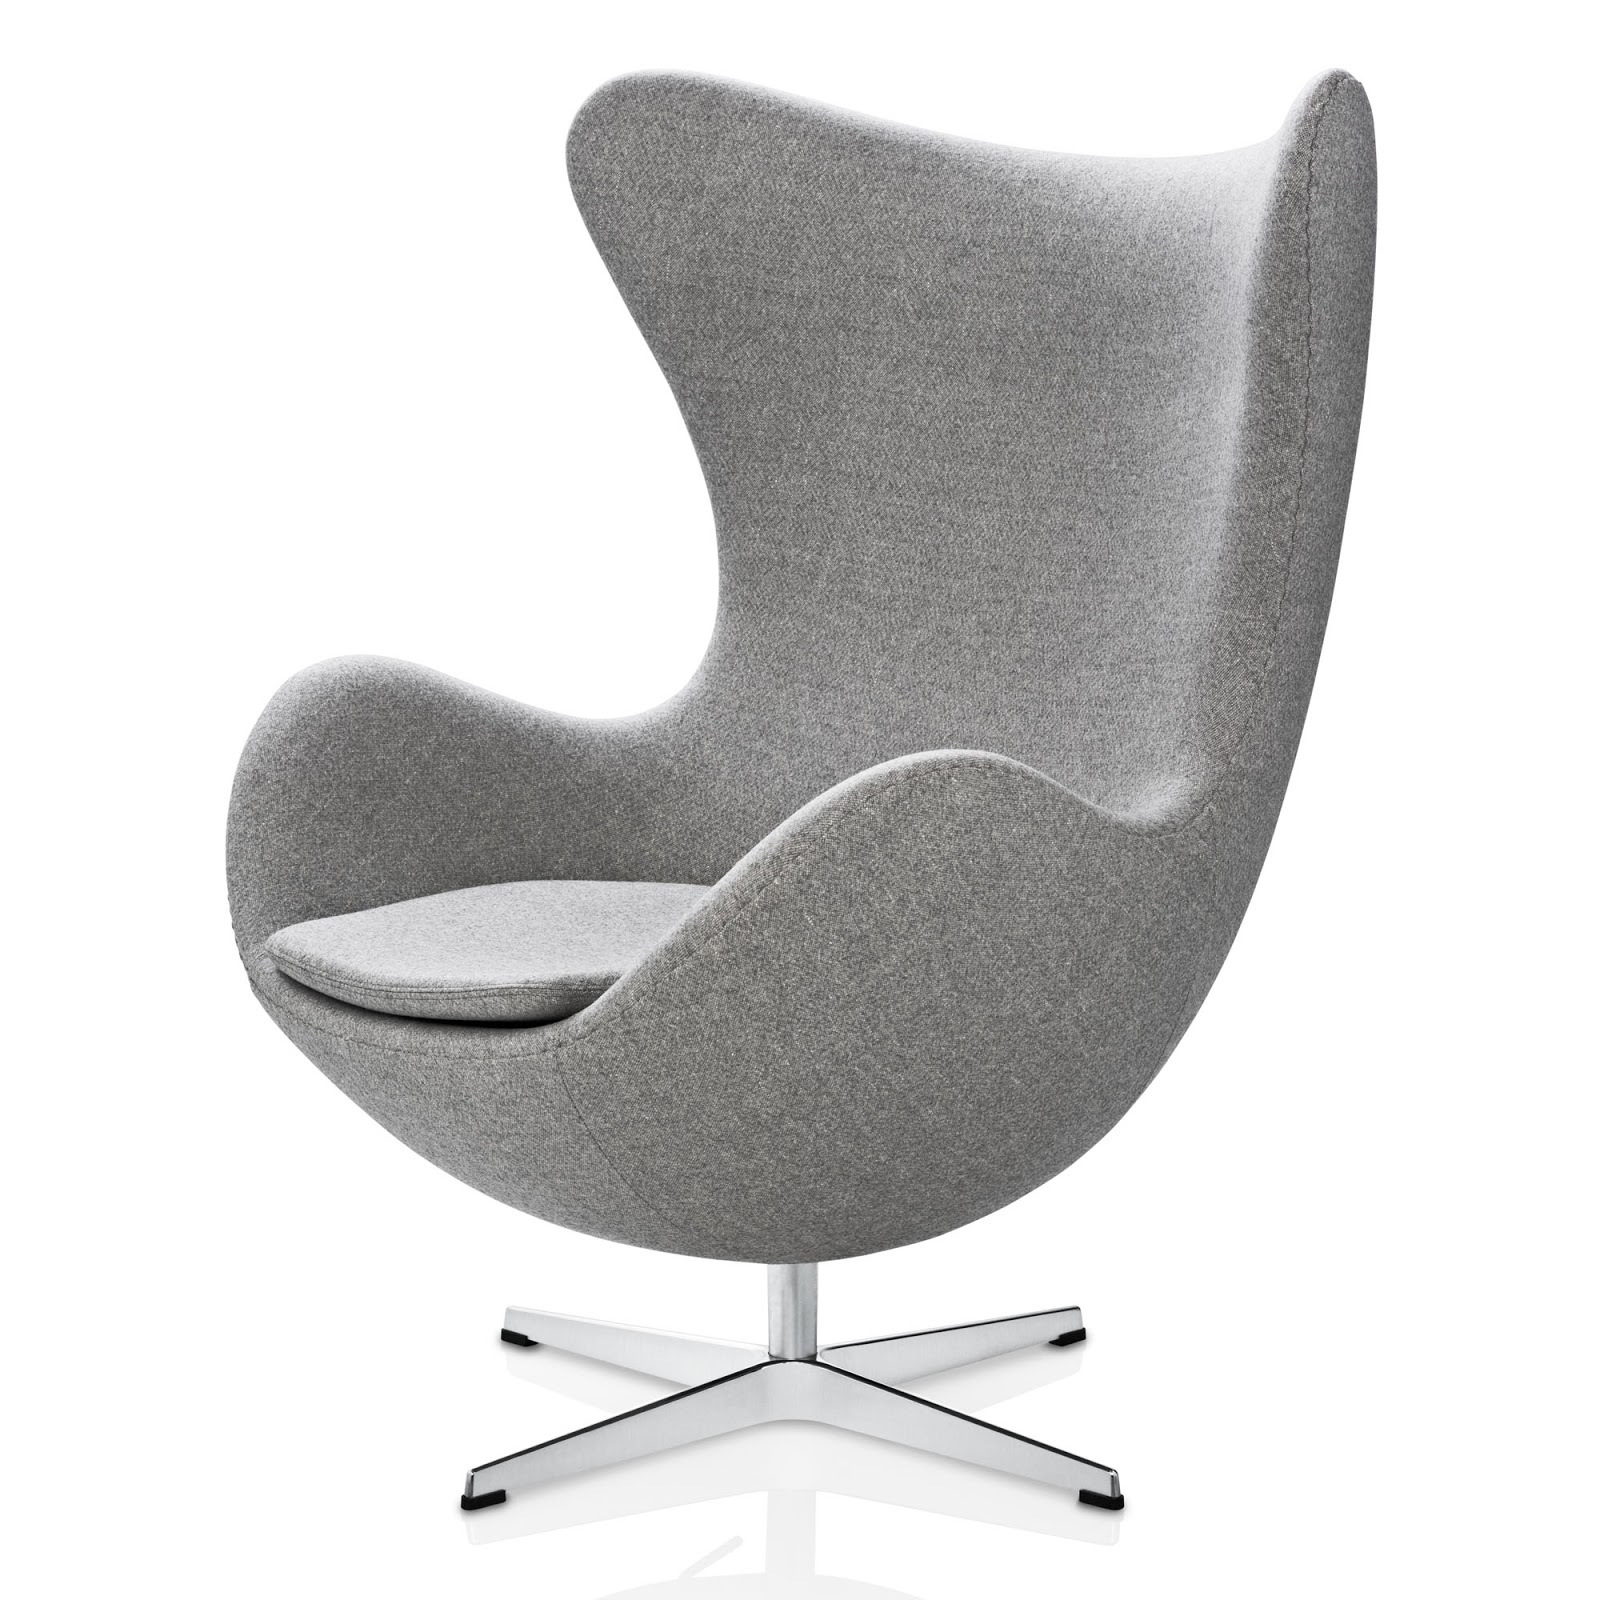 egg chair in light grey ducale fabric by fritz hansen. Black Bedroom Furniture Sets. Home Design Ideas